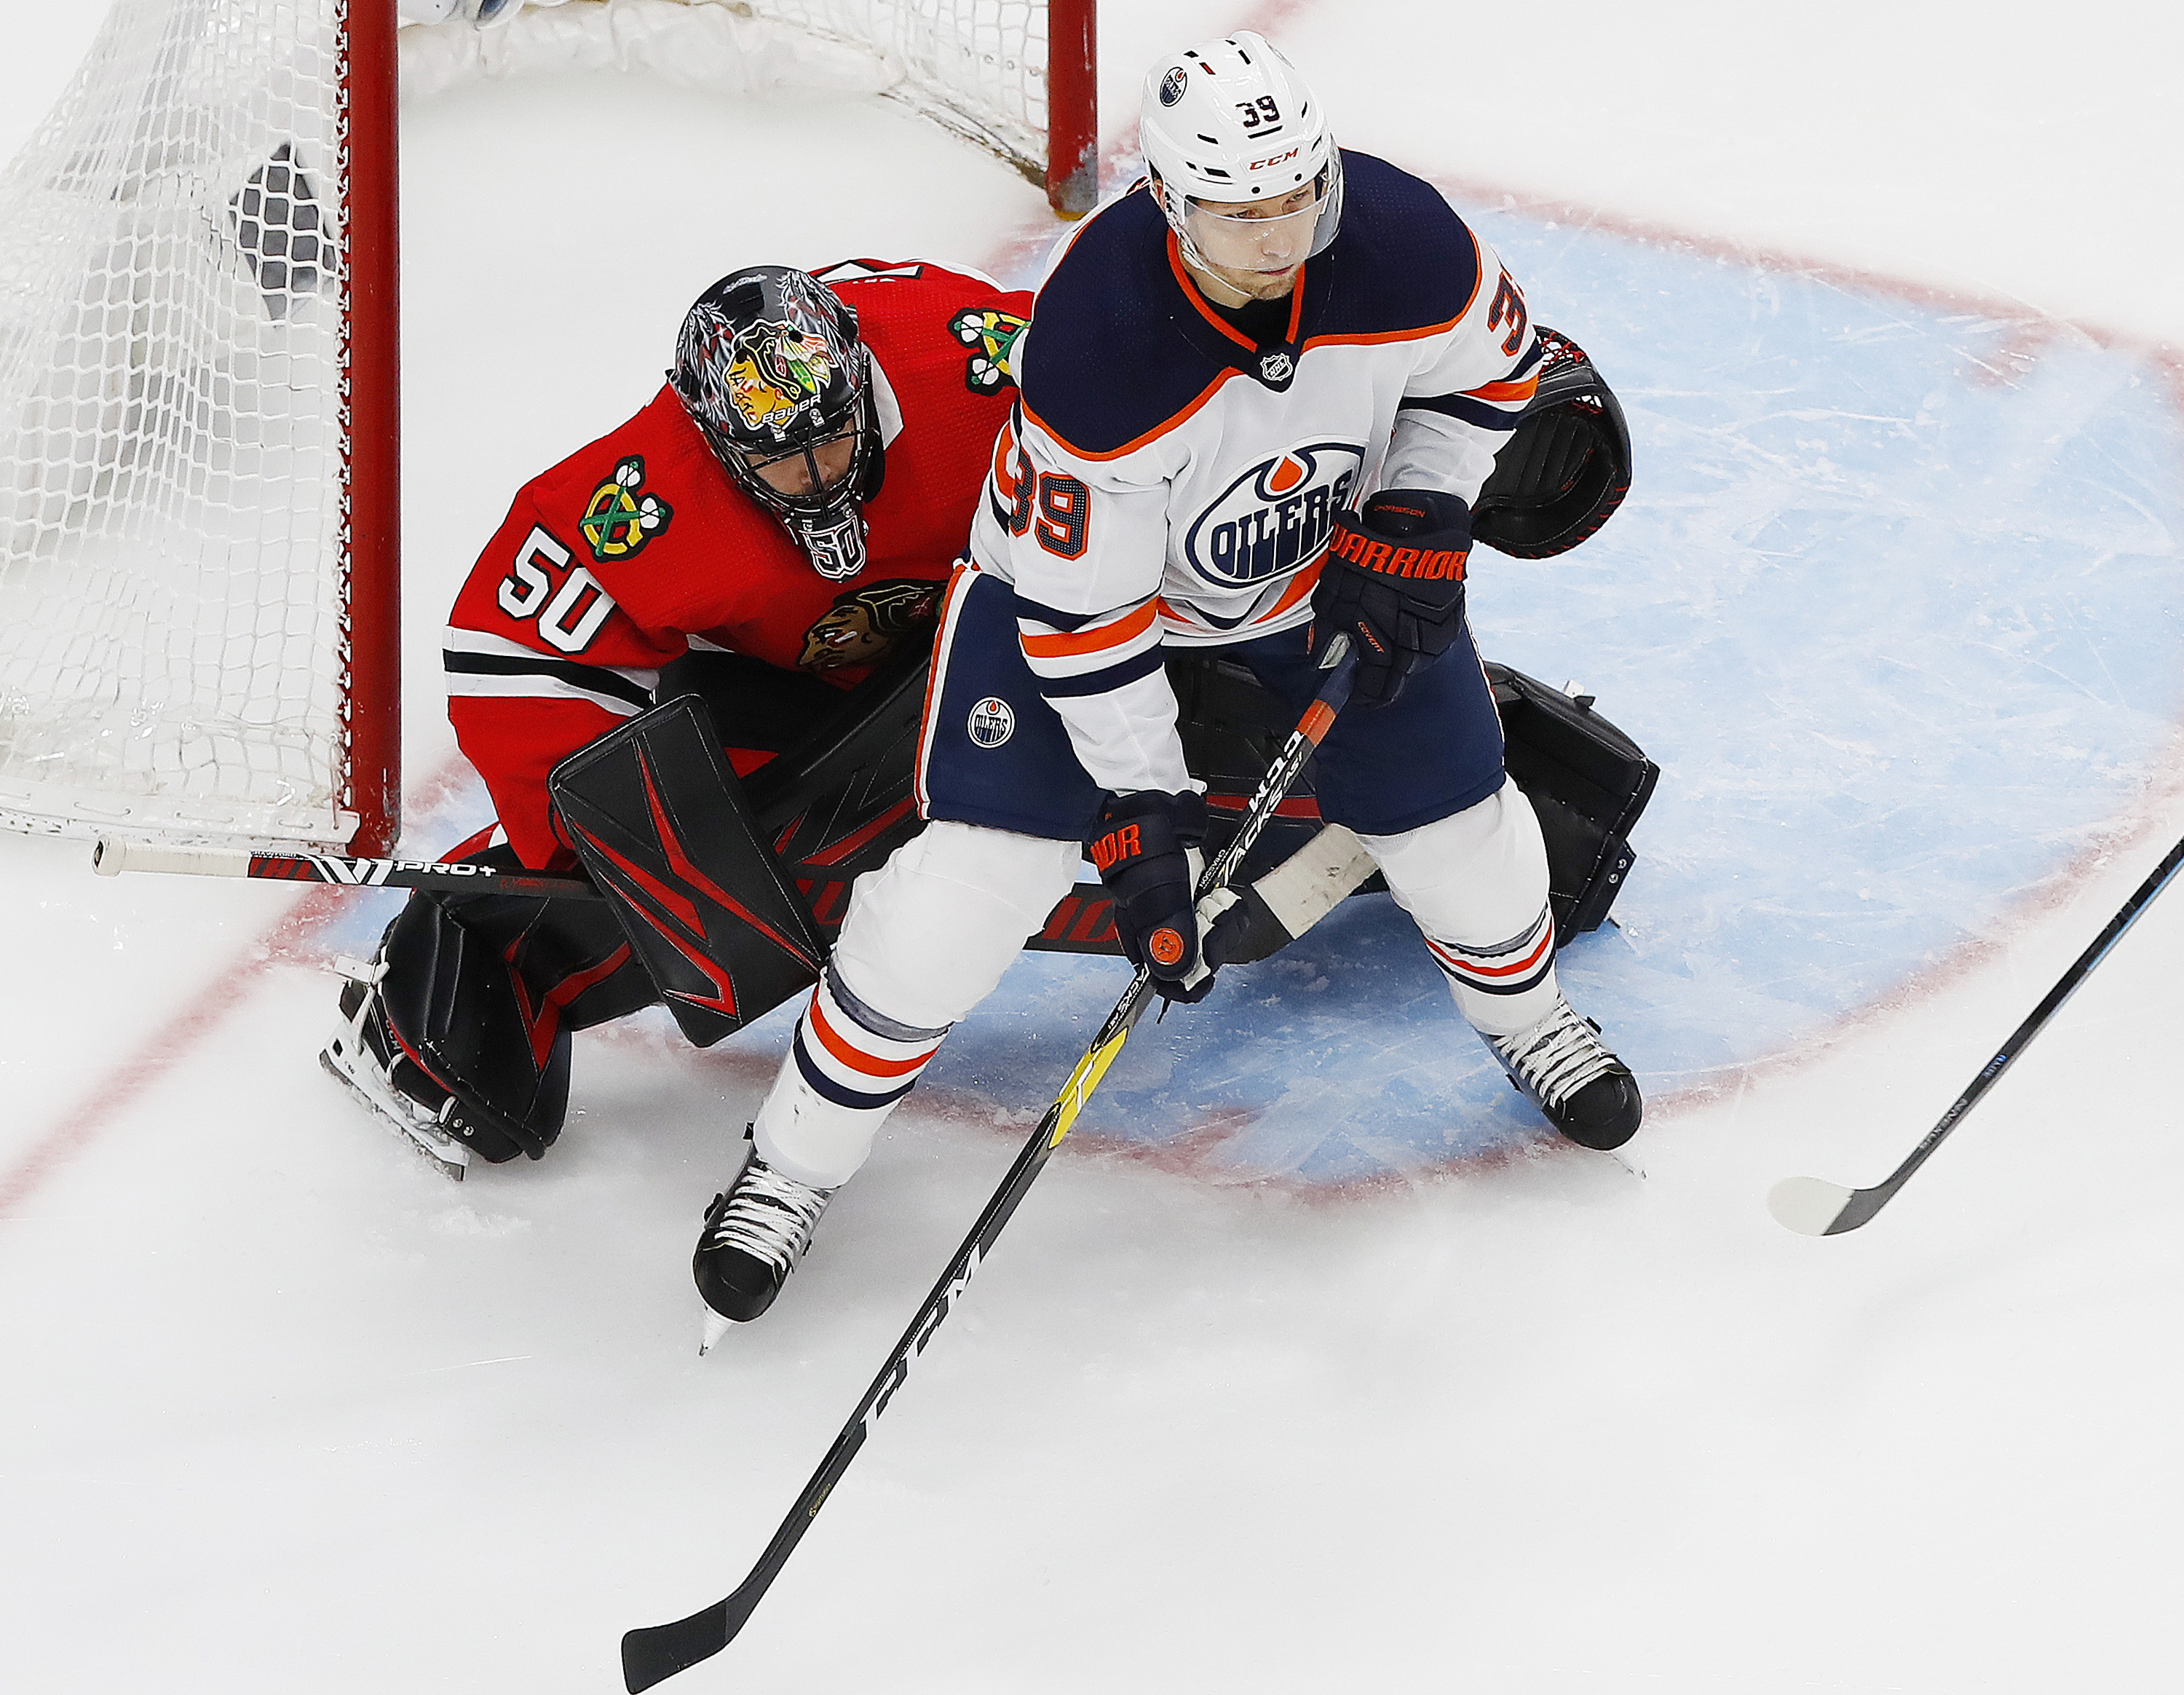 No hockey tonight? Five alternatives to watching Oilers game